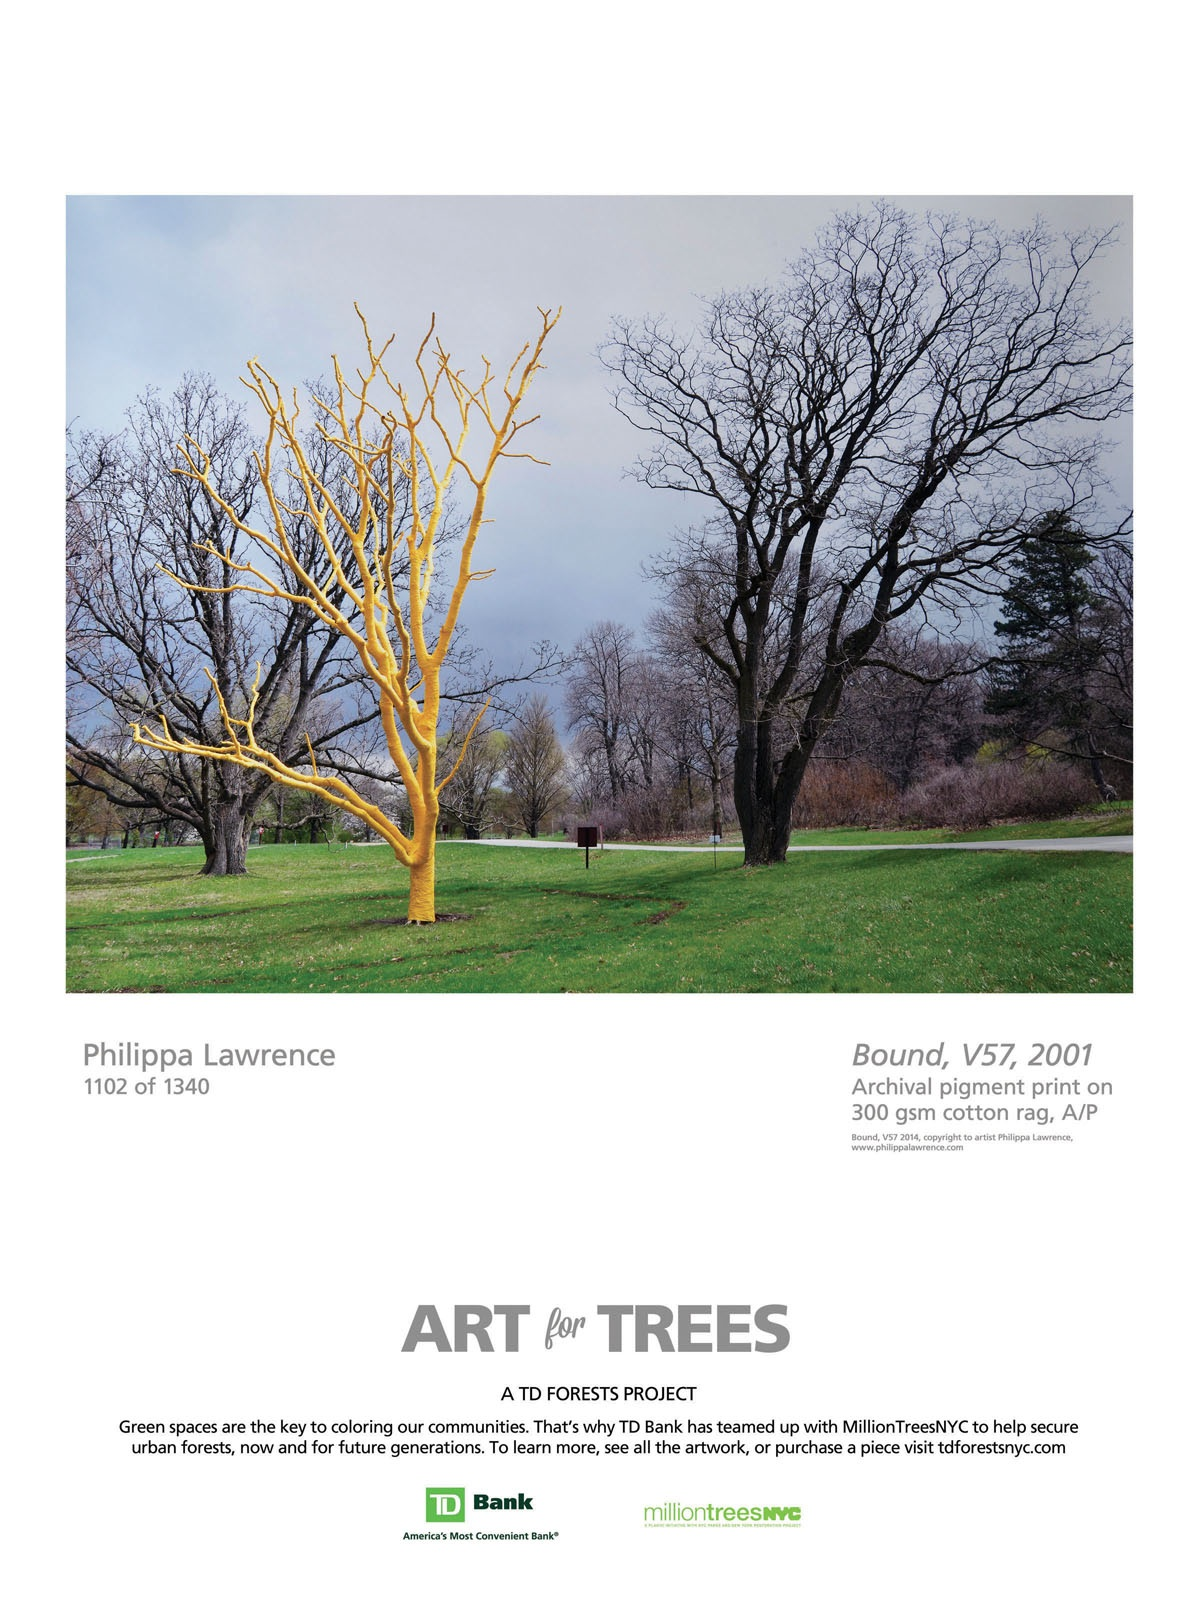 TD Bank Outdoor Advert By Tierney: Art for Trees - Philippa Lawrence ...